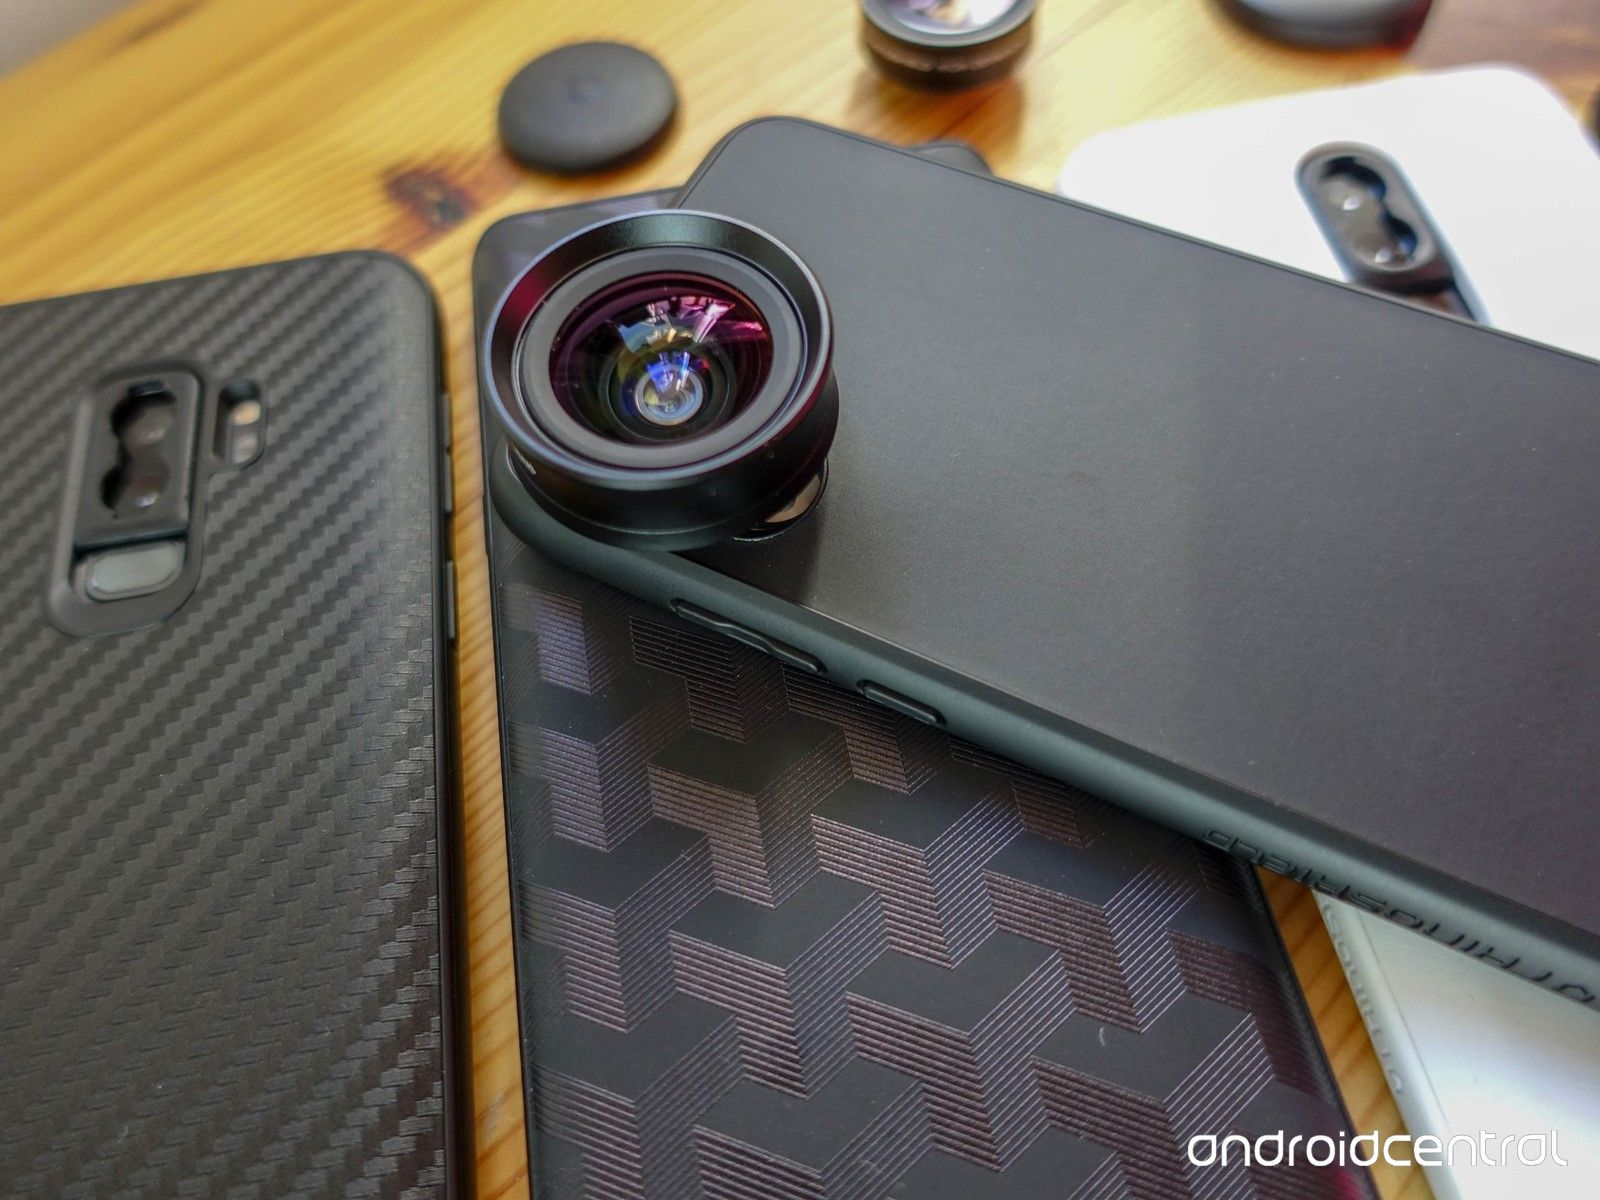 Win A New Android Phone And Rhinoshield Solidsuit 4k Hd Lens Set From Android Central New Android Phones Android Phone Phone